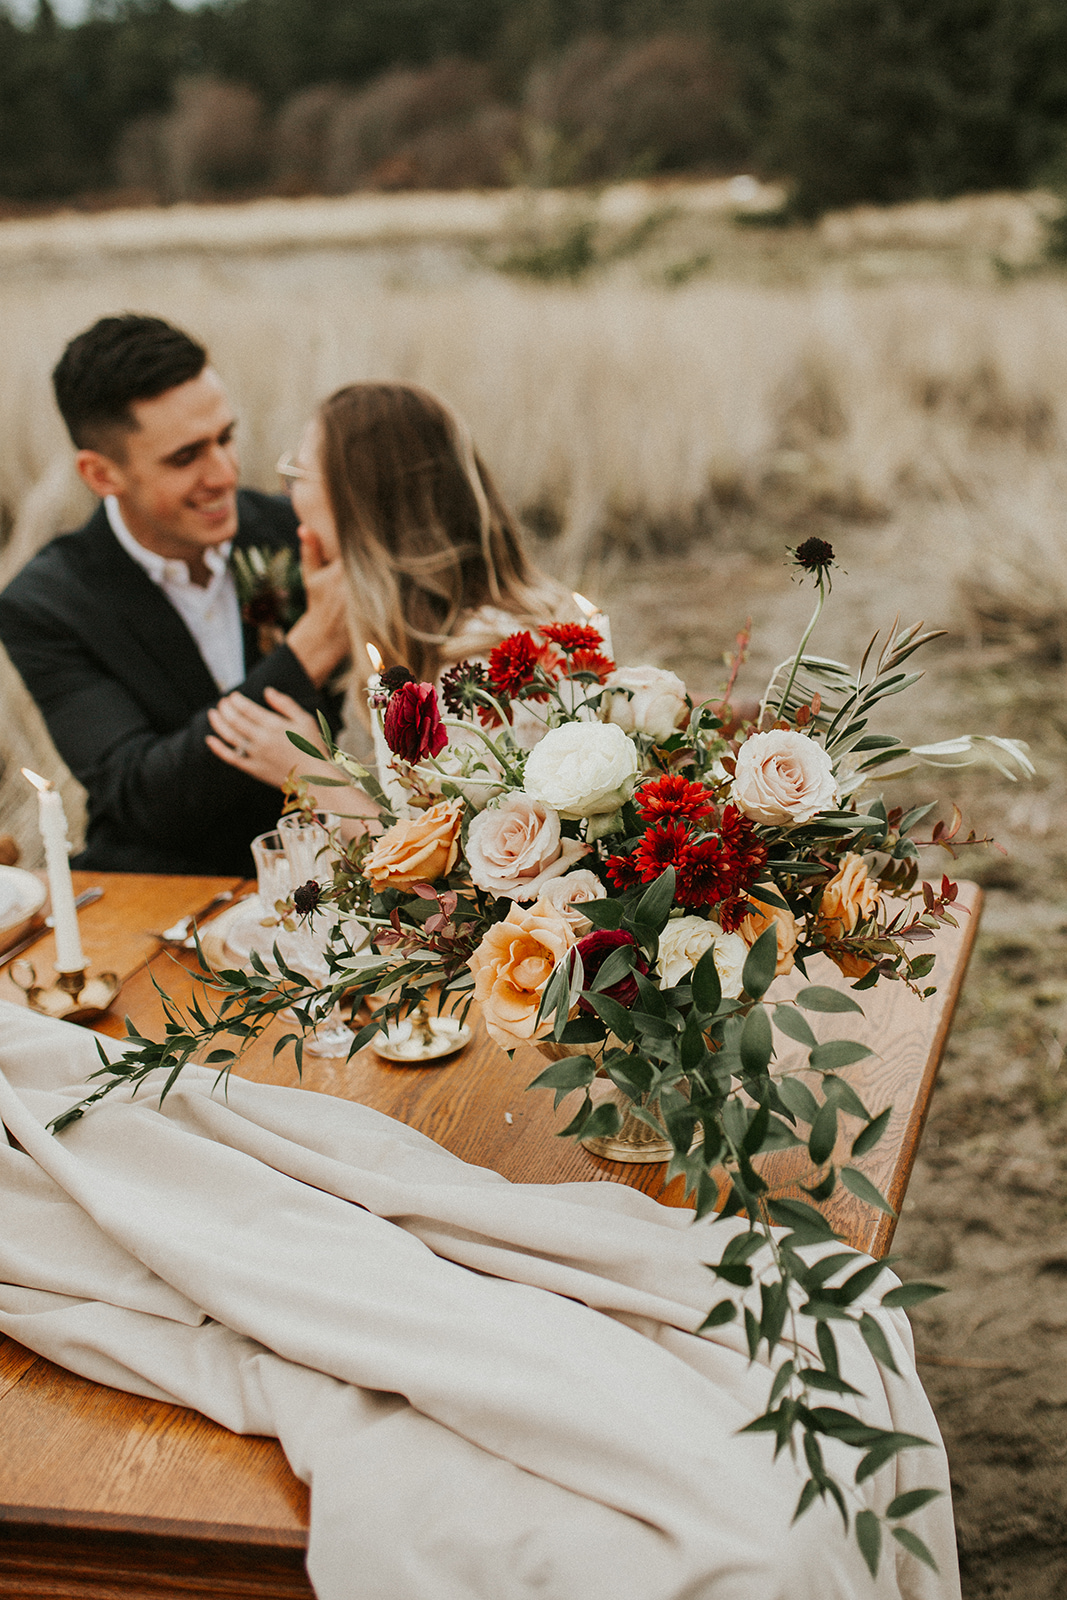 Deception point state park styled shoot -141.jpg